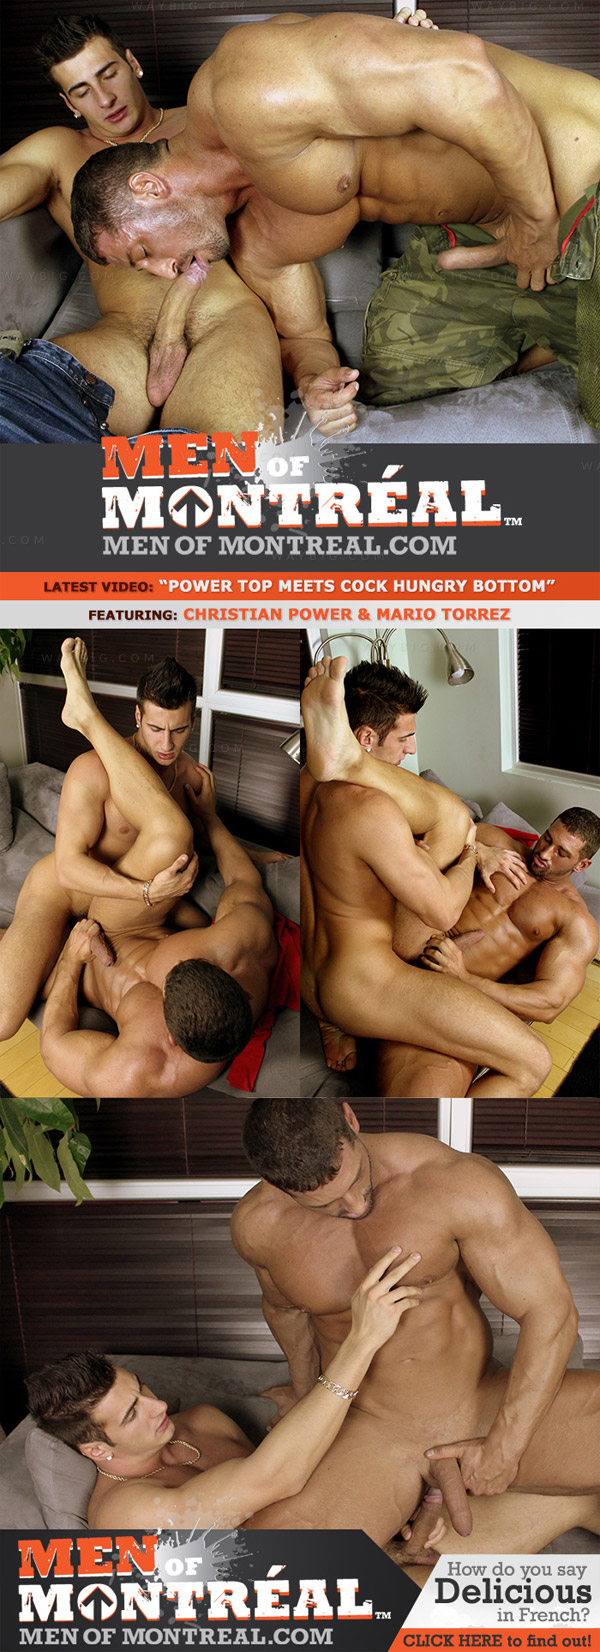 Christian Power & Mario Torrez (Power Top Meets Cock Hungry Bottom) at MenOfMontreal